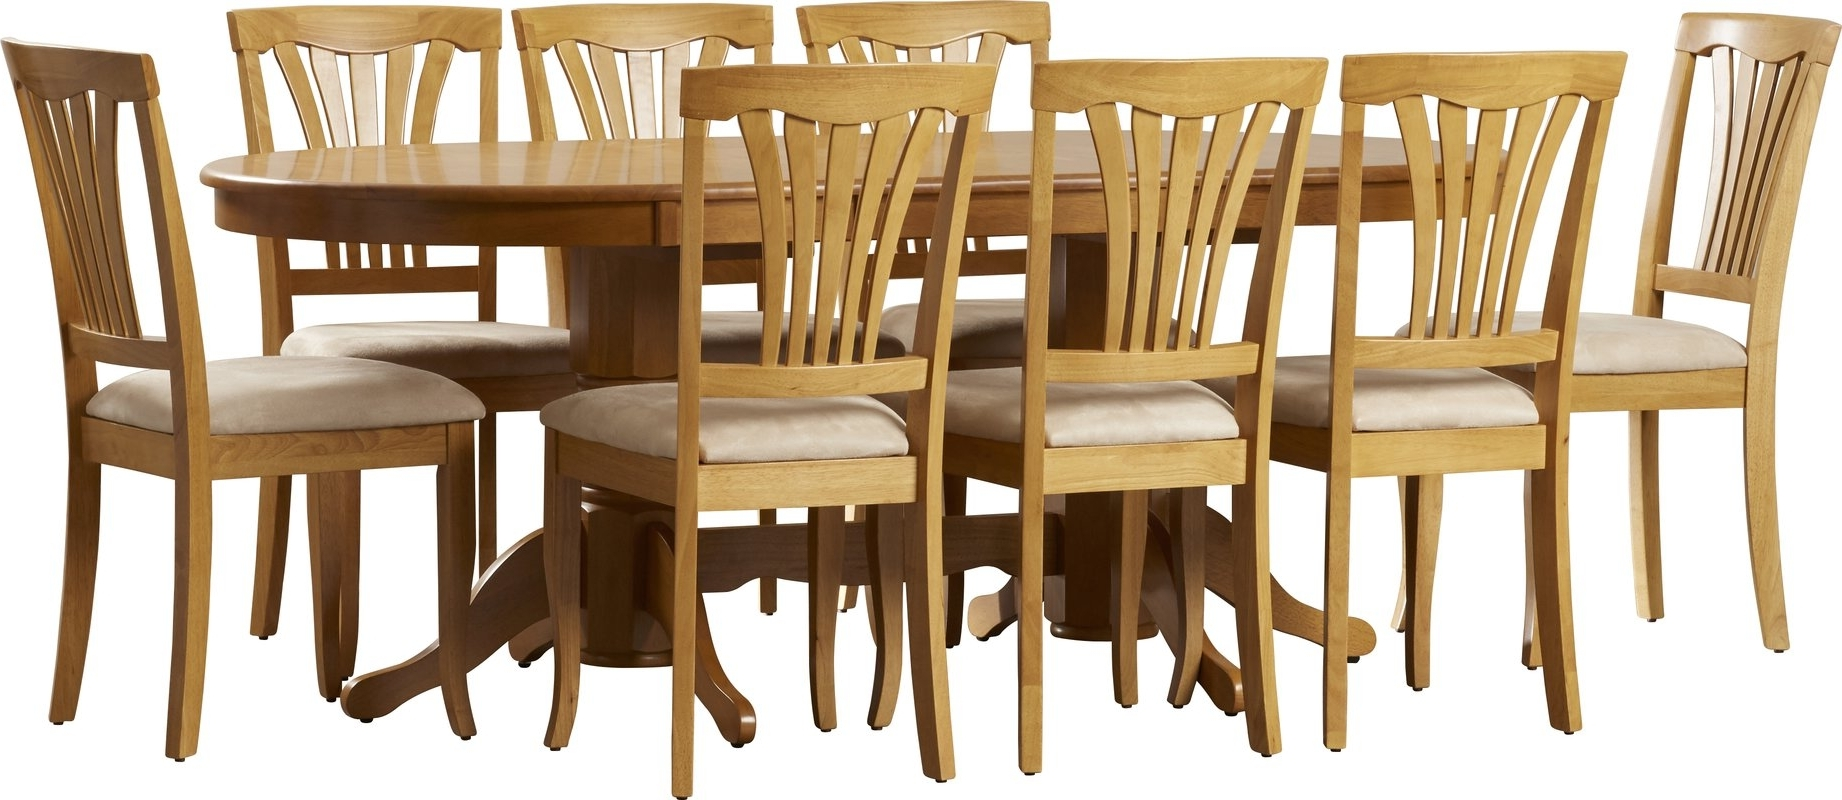 [%100+ [ 9 Piece Dining Room Sets ] | 100 9 Pc Dining Room Sets Lark Inside Best And Newest Caira 7 Piece Rectangular Dining Sets With Diamond Back Side Chairs|Caira 7 Piece Rectangular Dining Sets With Diamond Back Side Chairs Pertaining To Most Popular 100+ [ 9 Piece Dining Room Sets ] | 100 9 Pc Dining Room Sets Lark|Famous Caira 7 Piece Rectangular Dining Sets With Diamond Back Side Chairs Regarding 100+ [ 9 Piece Dining Room Sets ] | 100 9 Pc Dining Room Sets Lark|2018 100+ [ 9 Piece Dining Room Sets ] | 100 9 Pc Dining Room Sets Lark Intended For Caira 7 Piece Rectangular Dining Sets With Diamond Back Side Chairs%] (View 1 of 25)